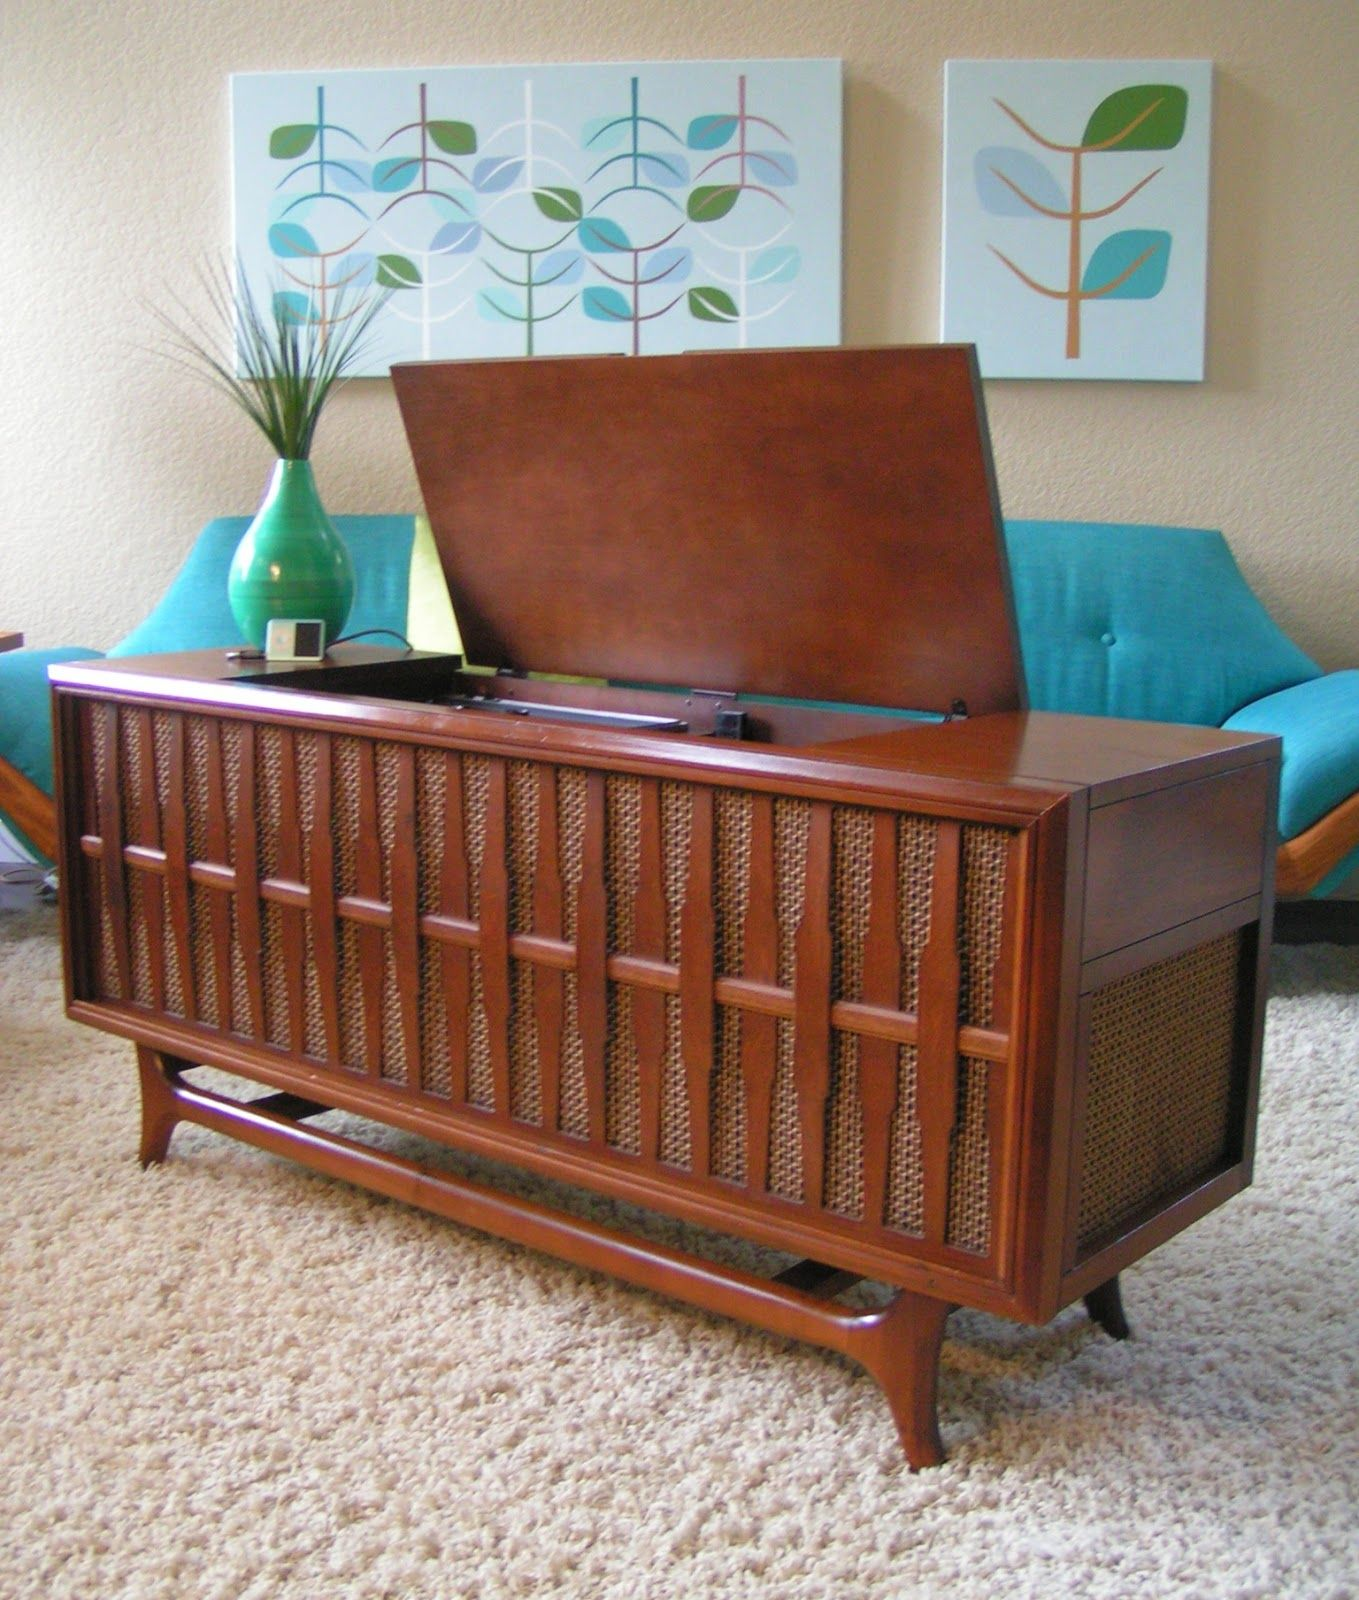 Vintage Mid Century Modern Furniture: Gorgeous!! Mid Century Mod AM/FM And Record Player